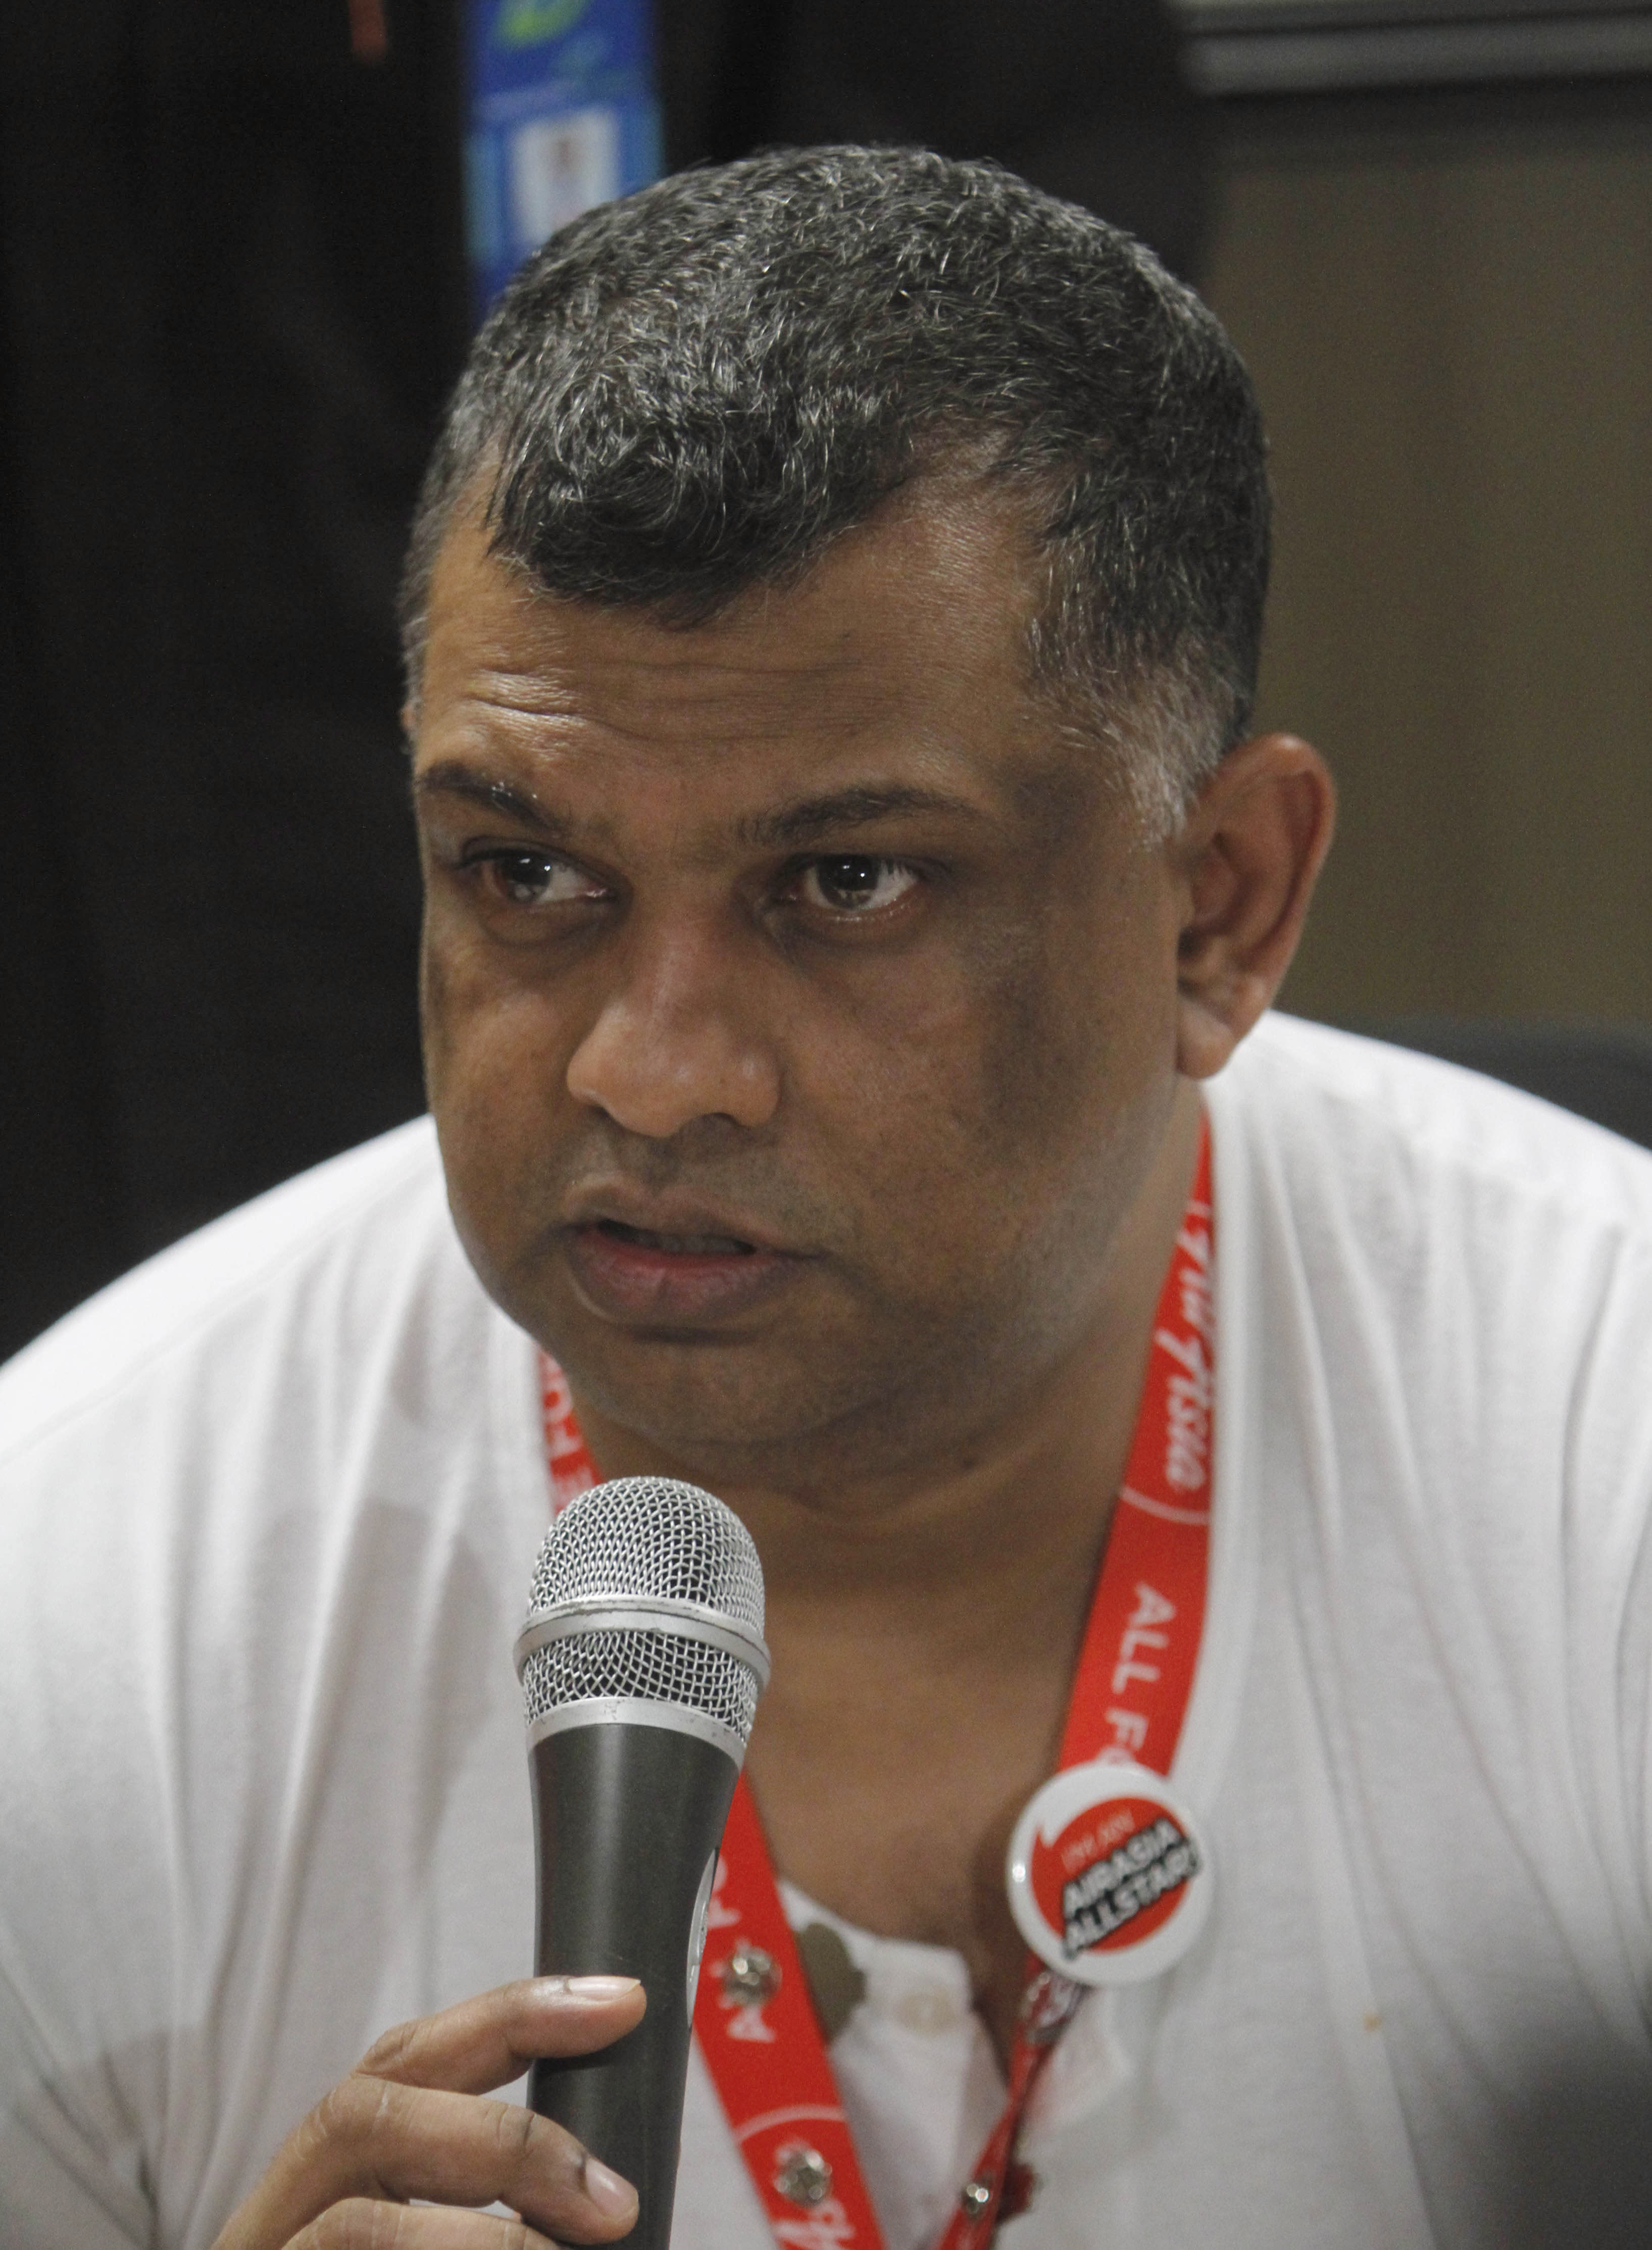 AirAsia's brash CEO now searches for right words